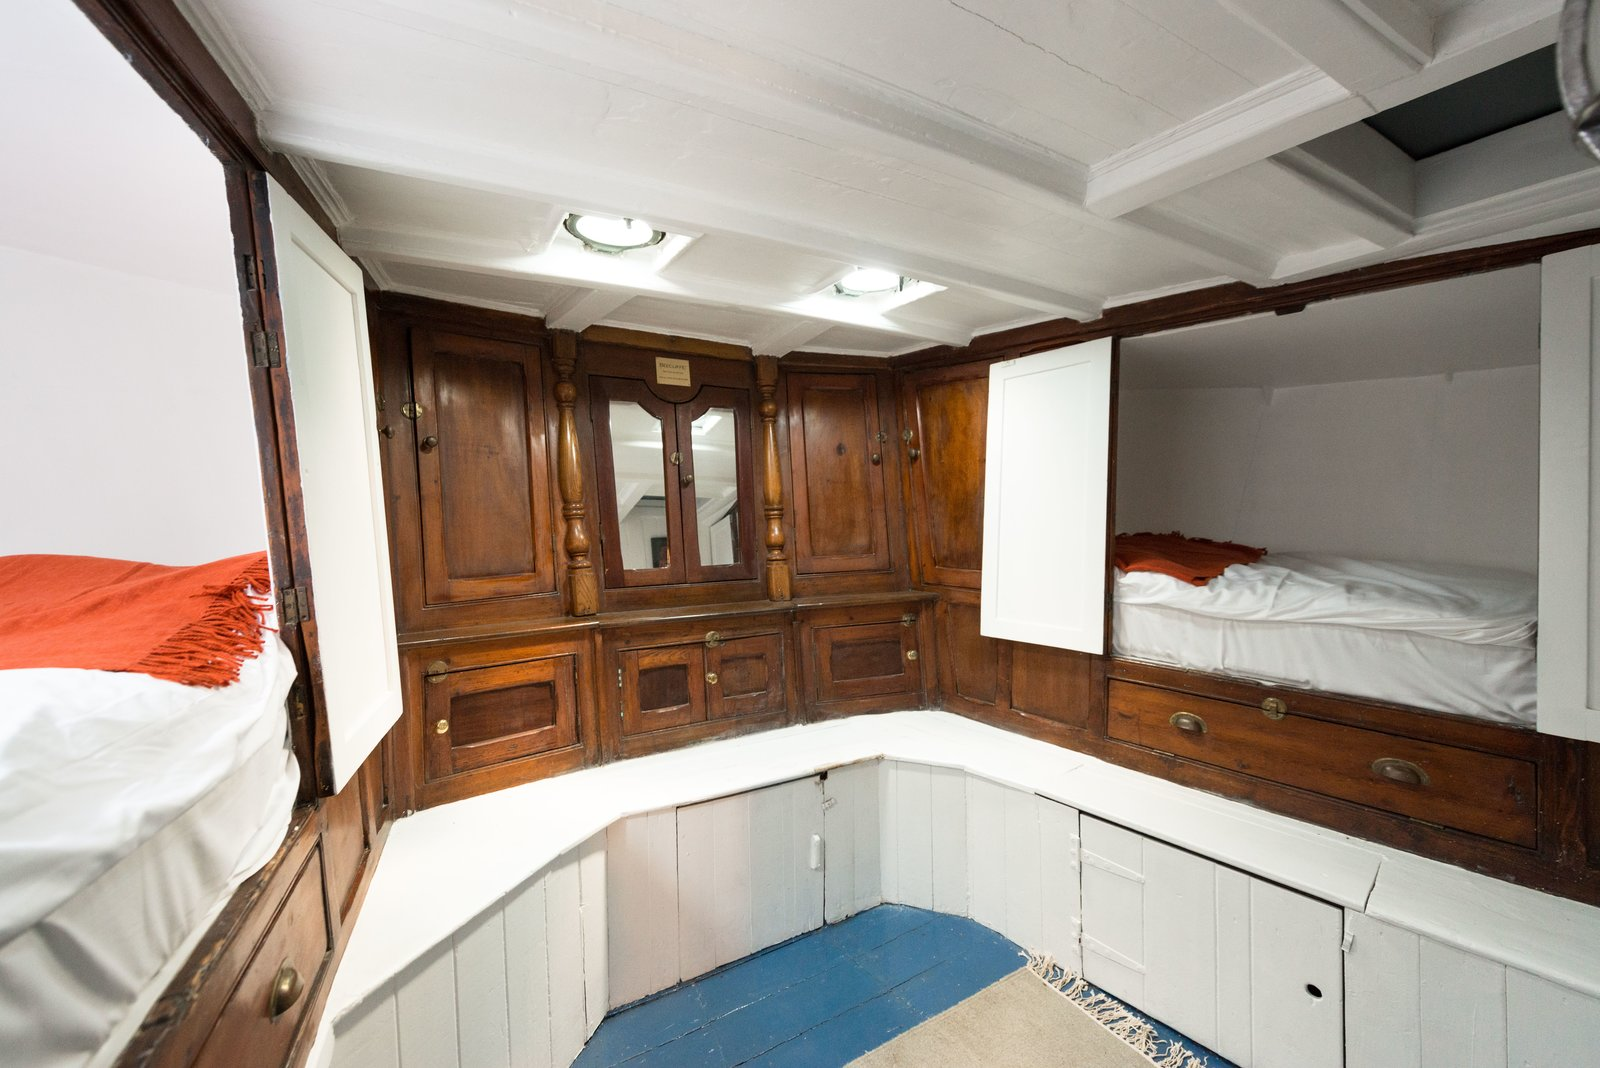 The bunk room provides built in sleeping quarters within the original woodwork. Tagged: Bedroom, Storage, Ceiling Lighting, Bunks, and Rug Floor.  Photo 6 of 9 in Londoners Can Live in This Scandinavian-Inspired, Converted Barge For $424K